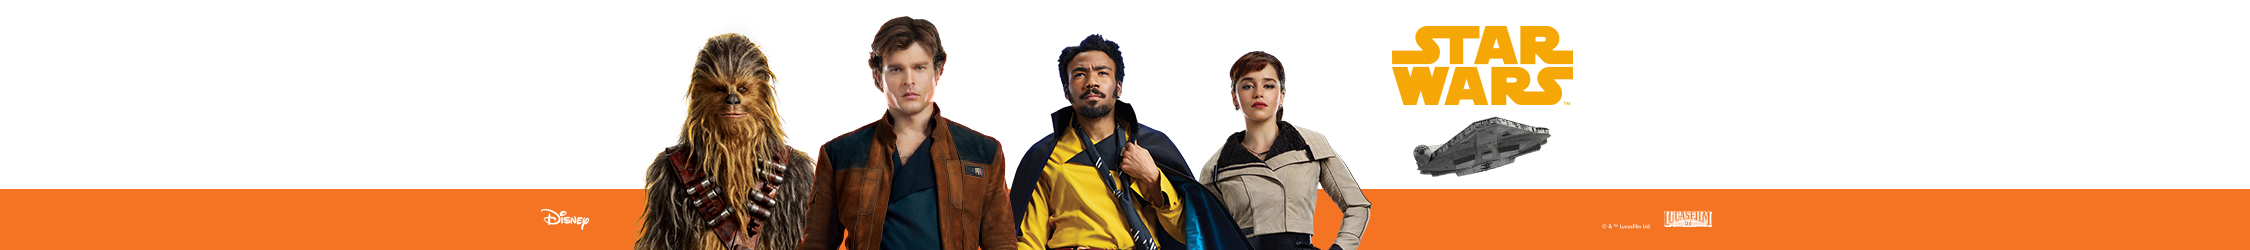 Solo A Star Wars Story banner